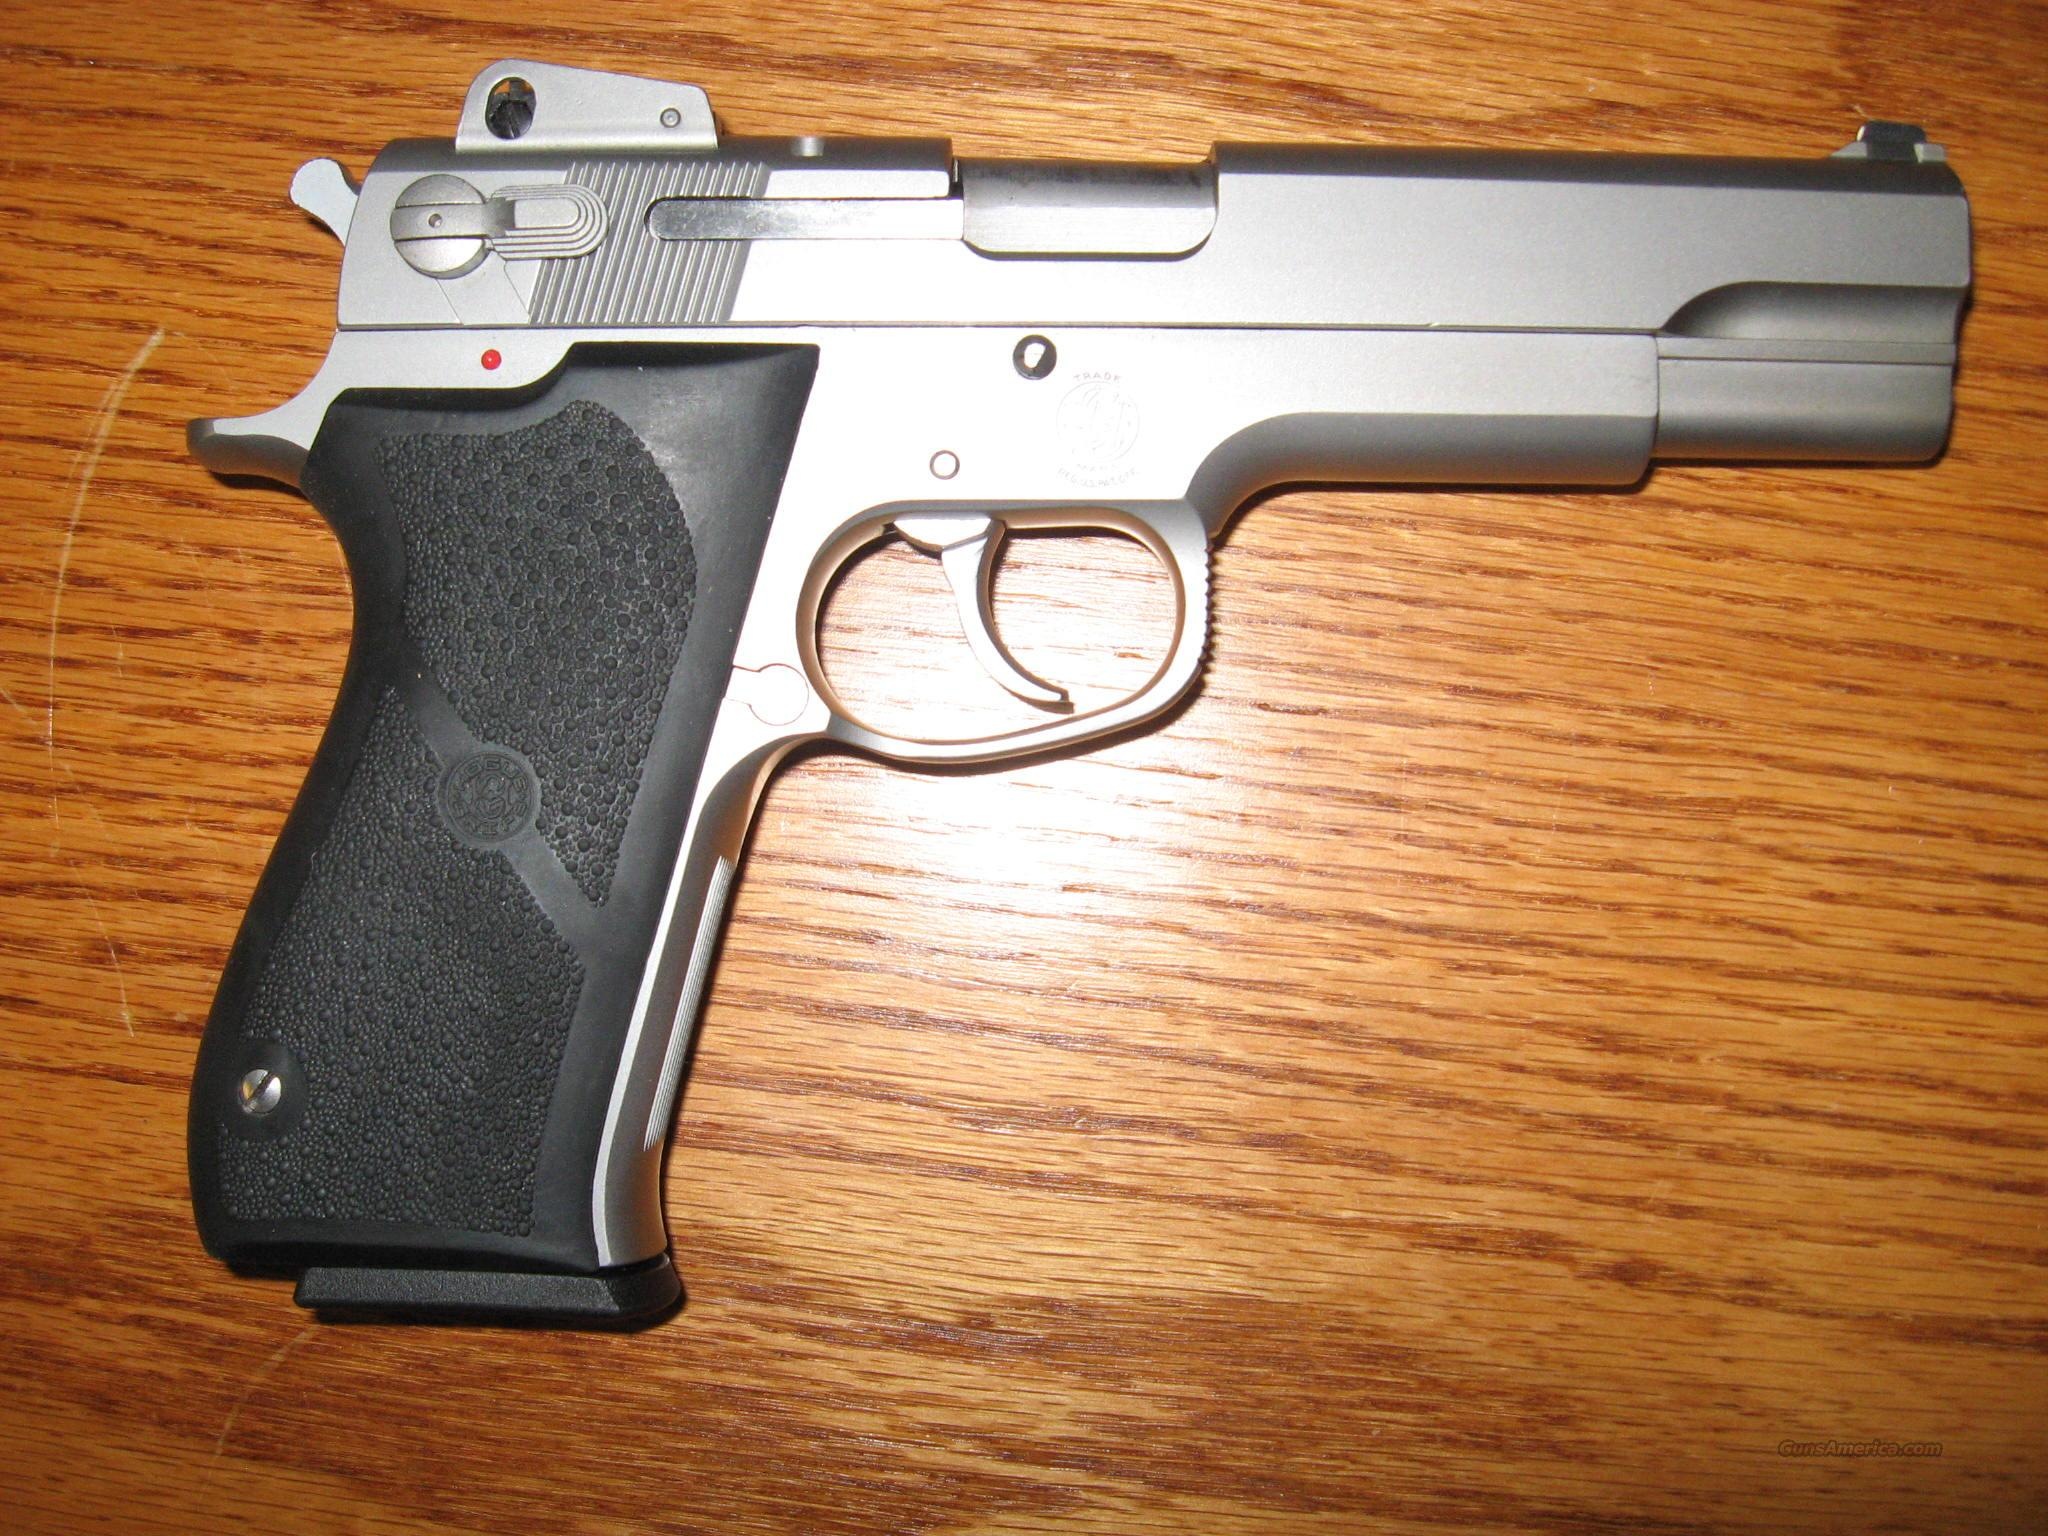 Smith & Wesson 4506  45acp  Guns > Pistols > Smith & Wesson Pistols - Autos > Steel Frame